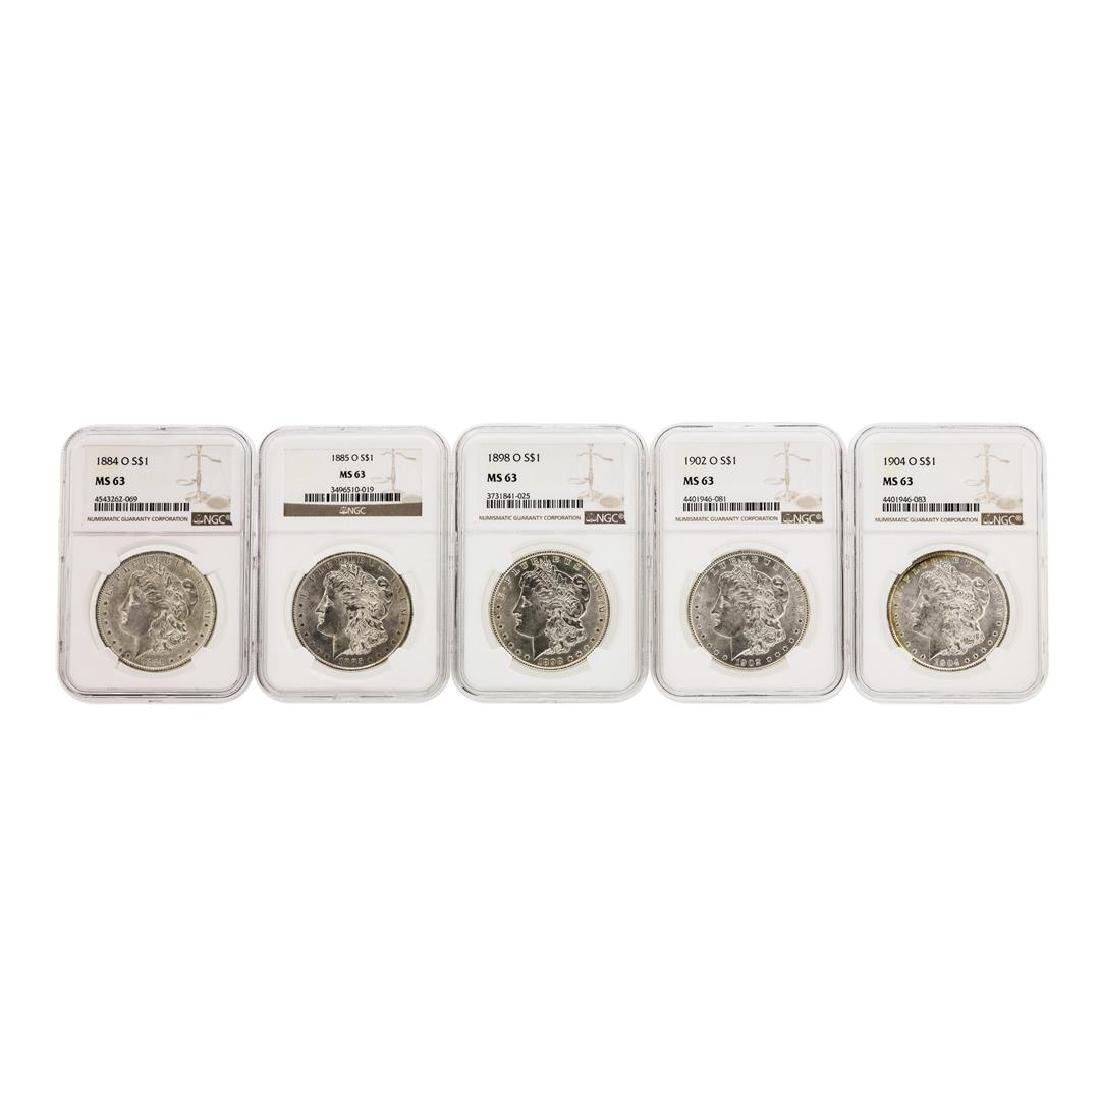 Lot of (5) Assorted $1 Morgan Silver Dollar Coins NGC